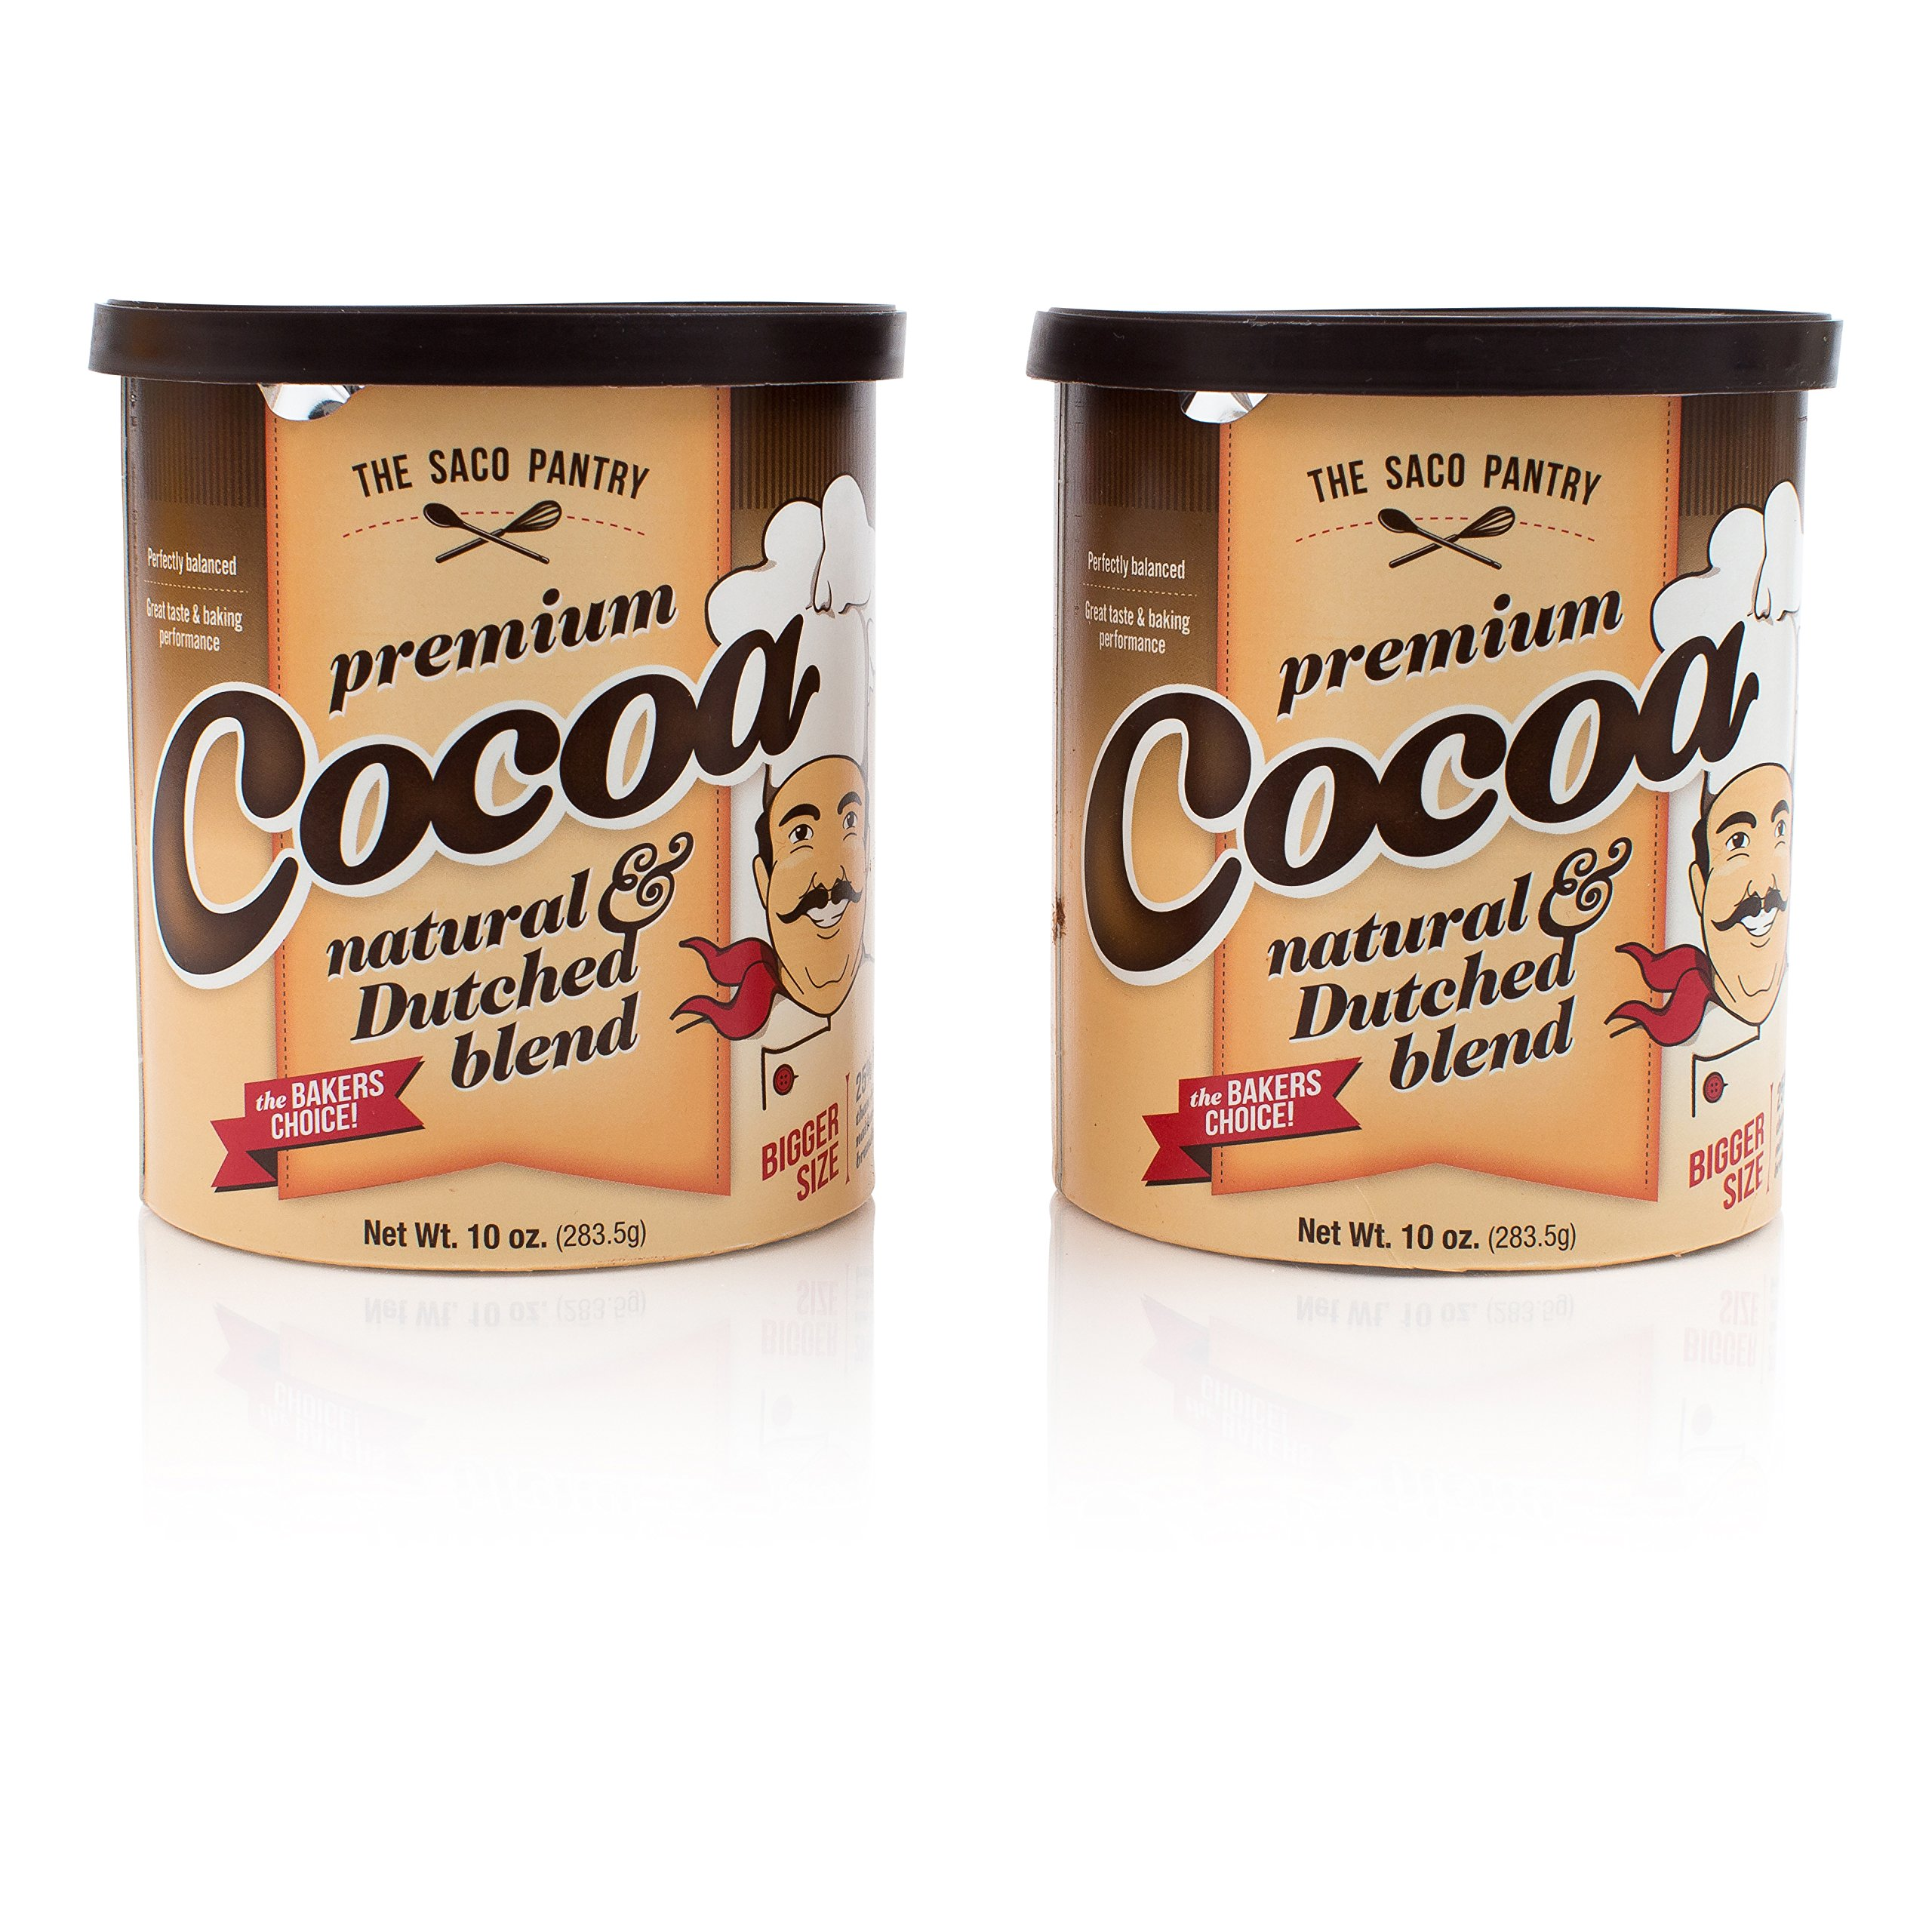 SACO Pantry Premium Cocoa, Natural and Dutched Blend, Certified Kosher, Gluten-Free, Nut-Free, 10oz, Pack of 2